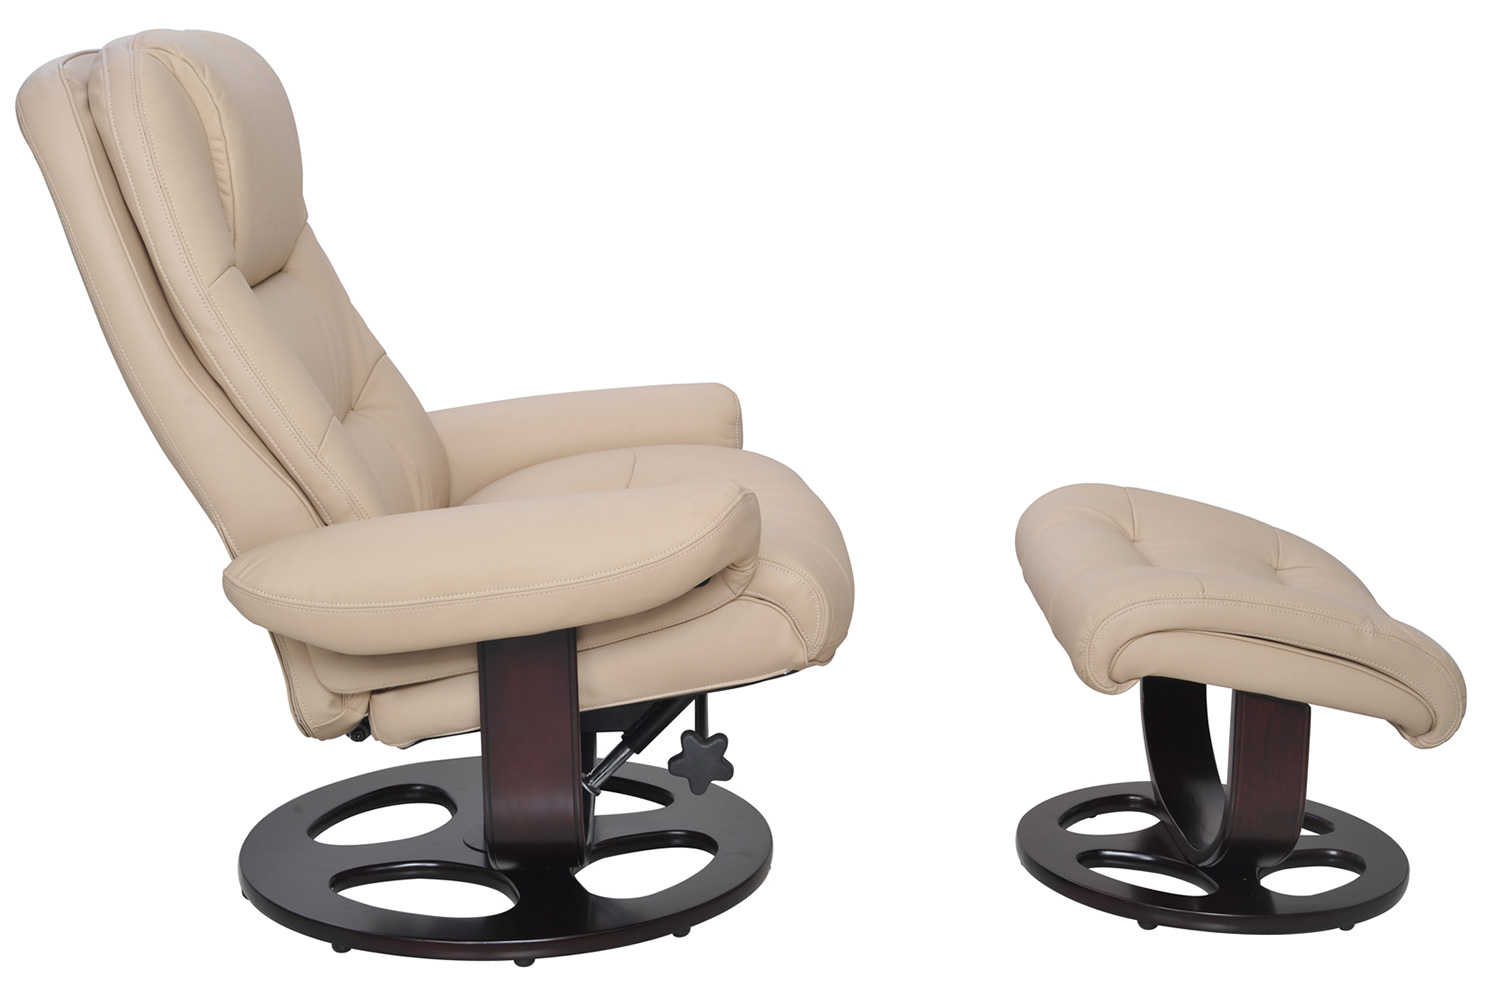 Barcalounger Jacque Pedestal Recliner Chair and Ottoman - Hilton Ivory/Leather Match